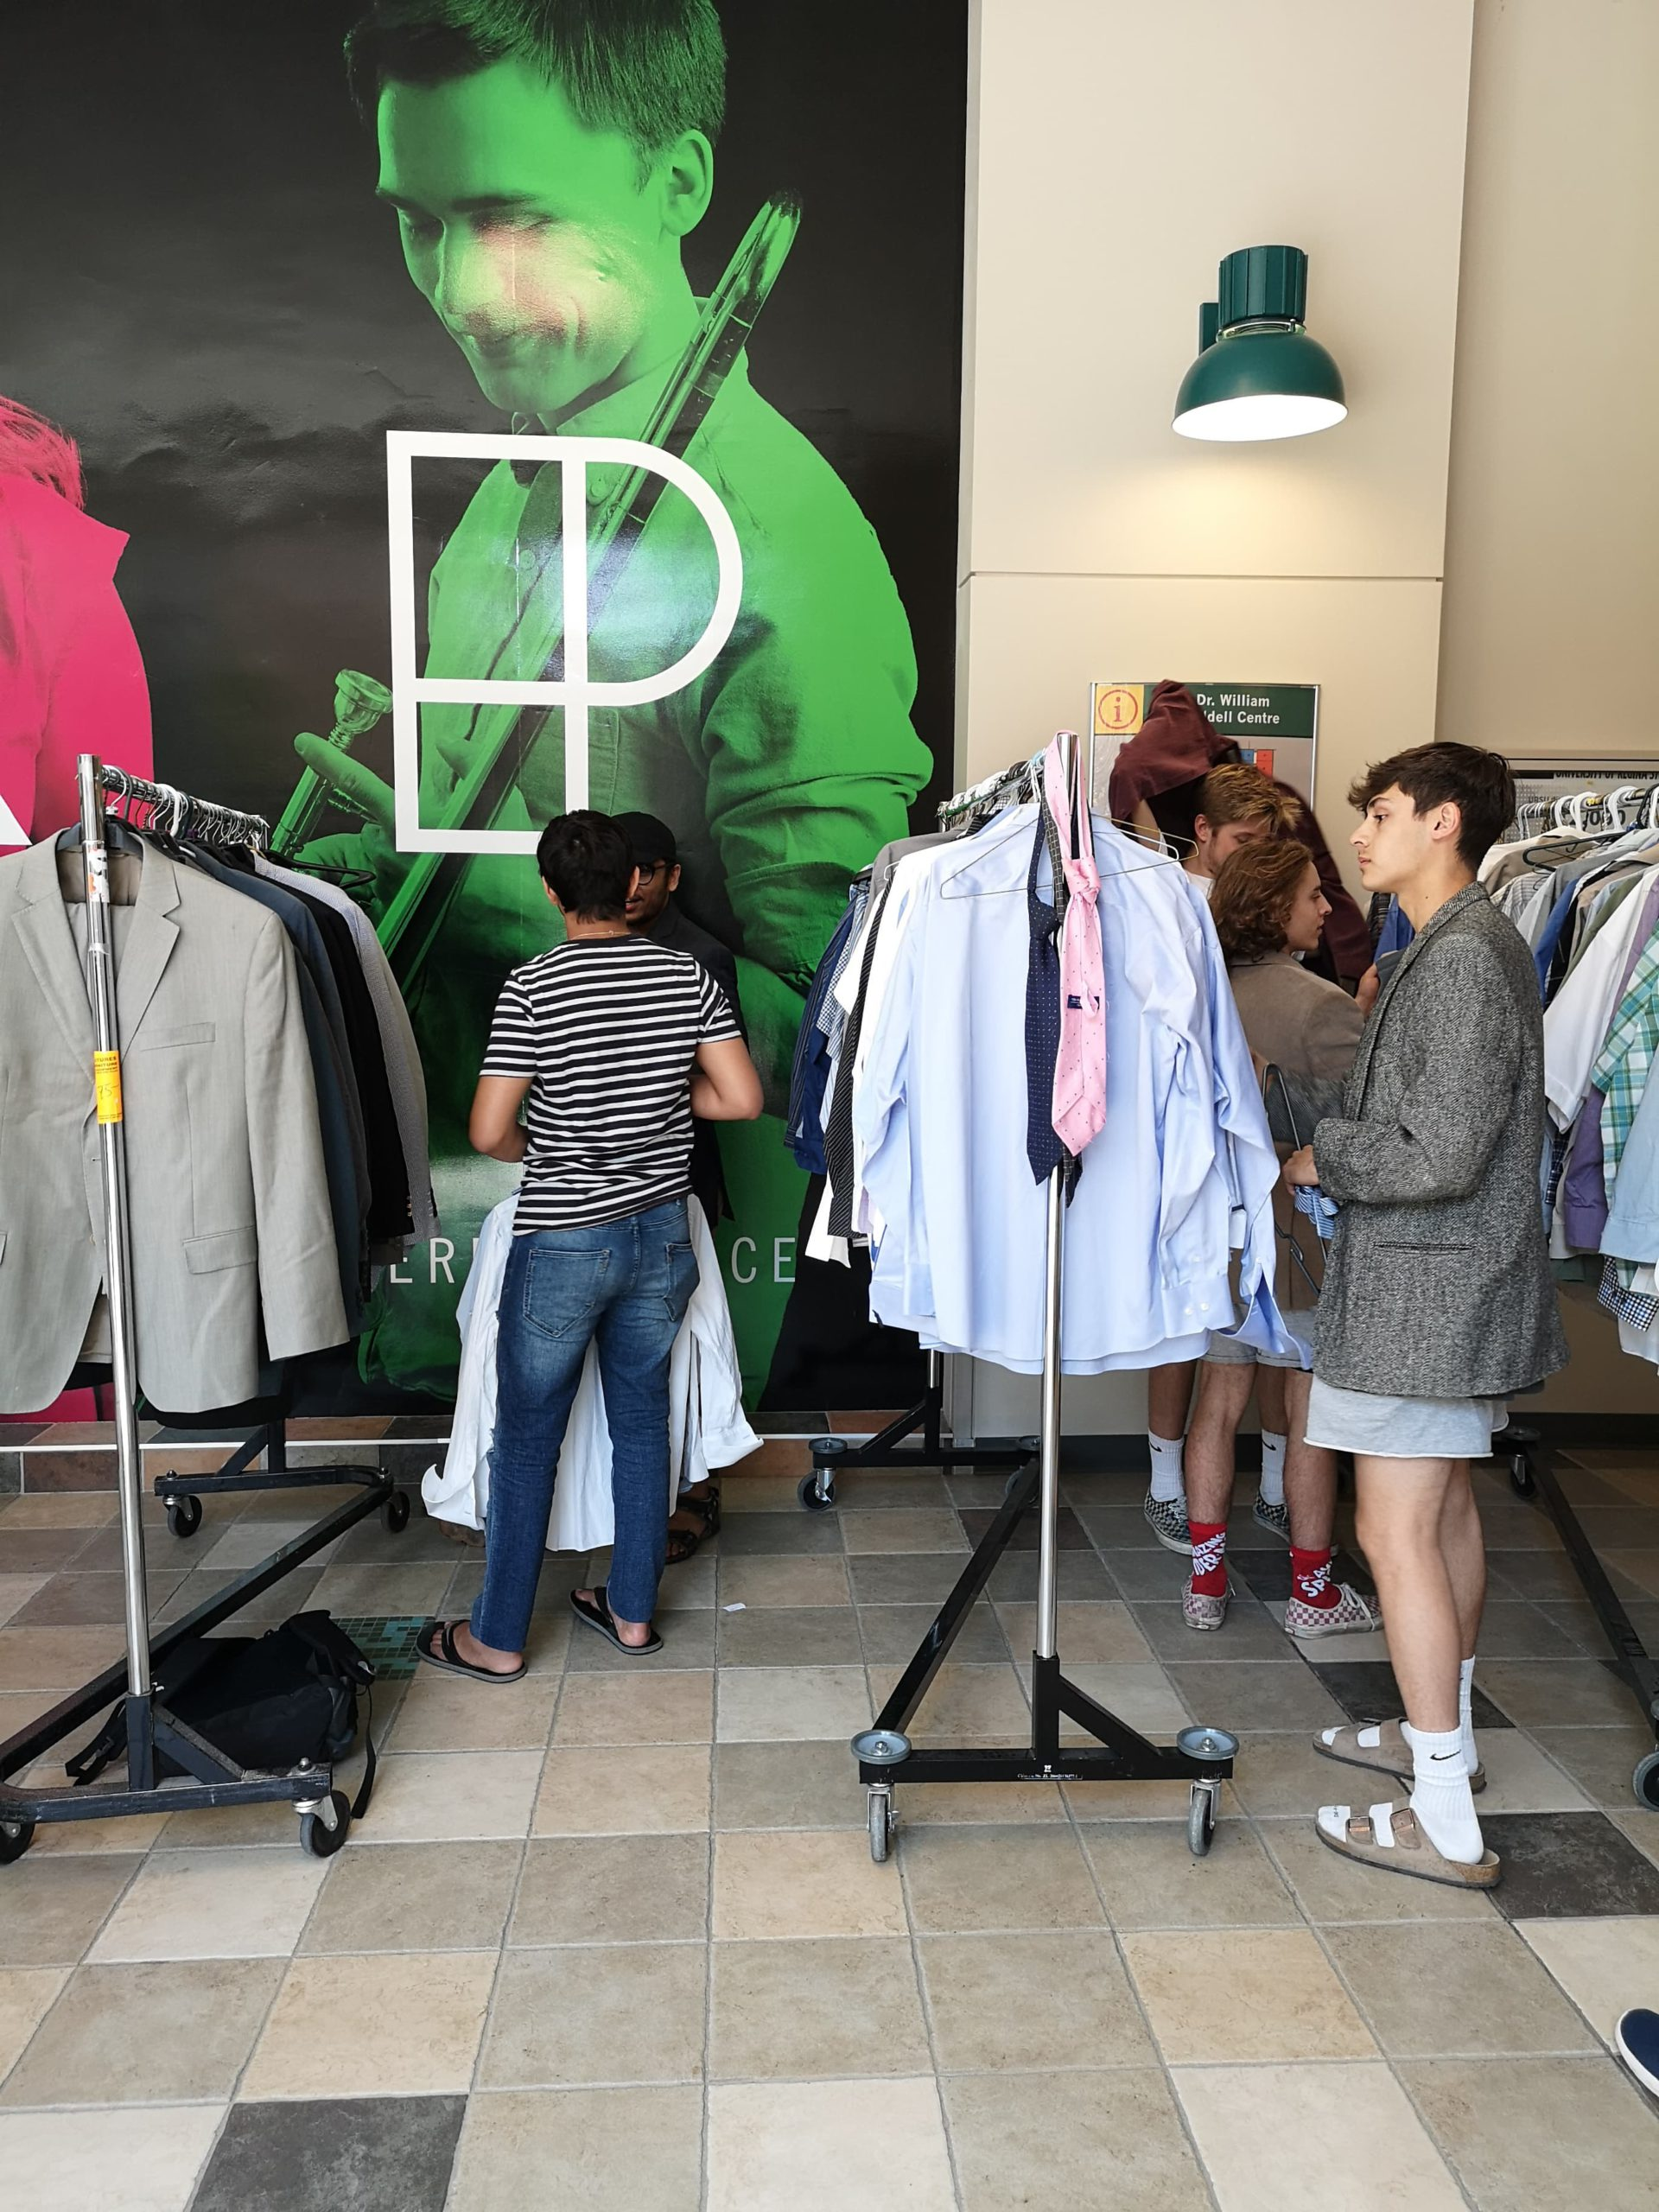 URSU Threads Program Helps Students Suit Up for Working World